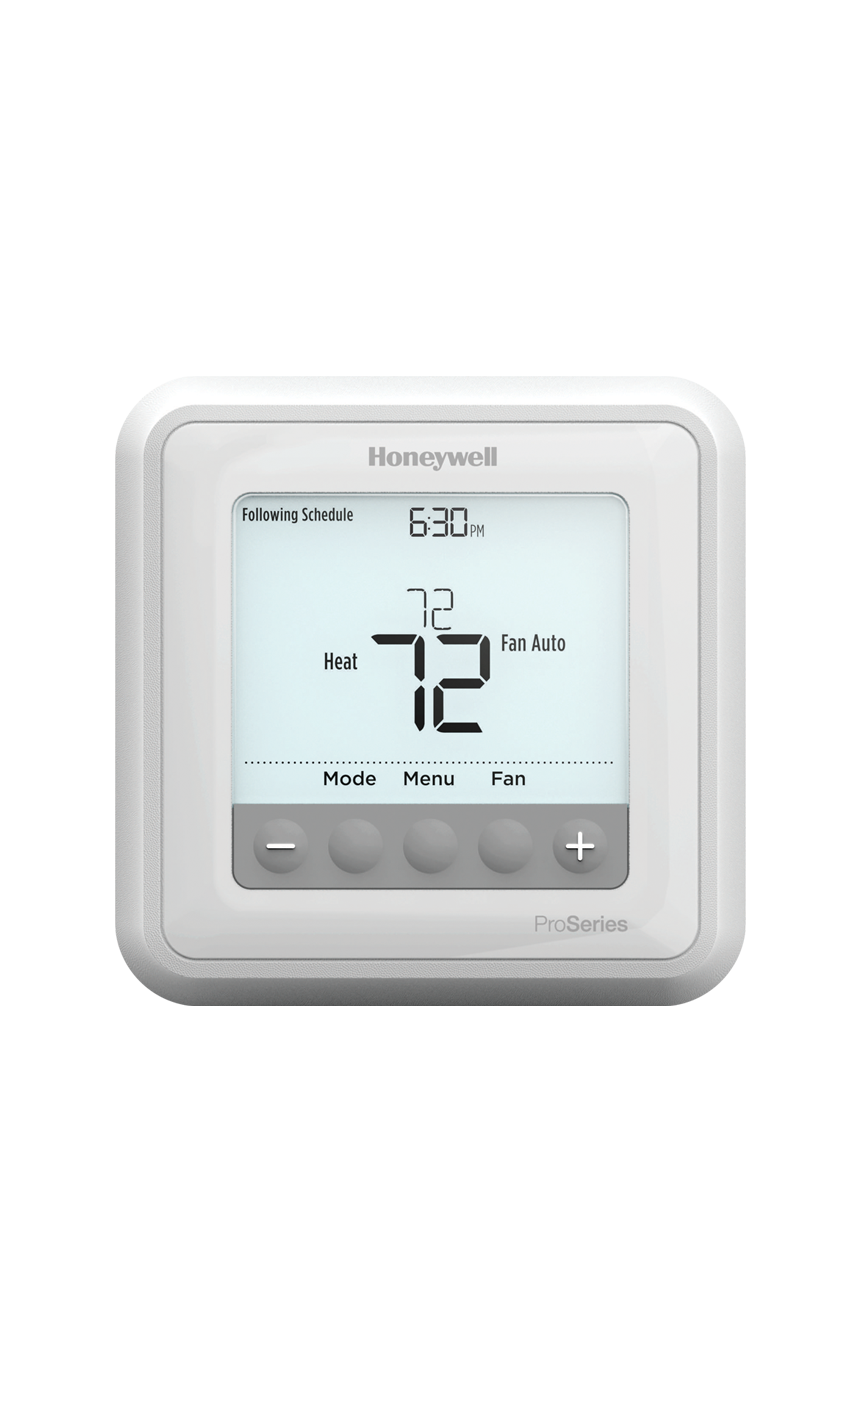 Legacy Honeywell T6 Thermostat